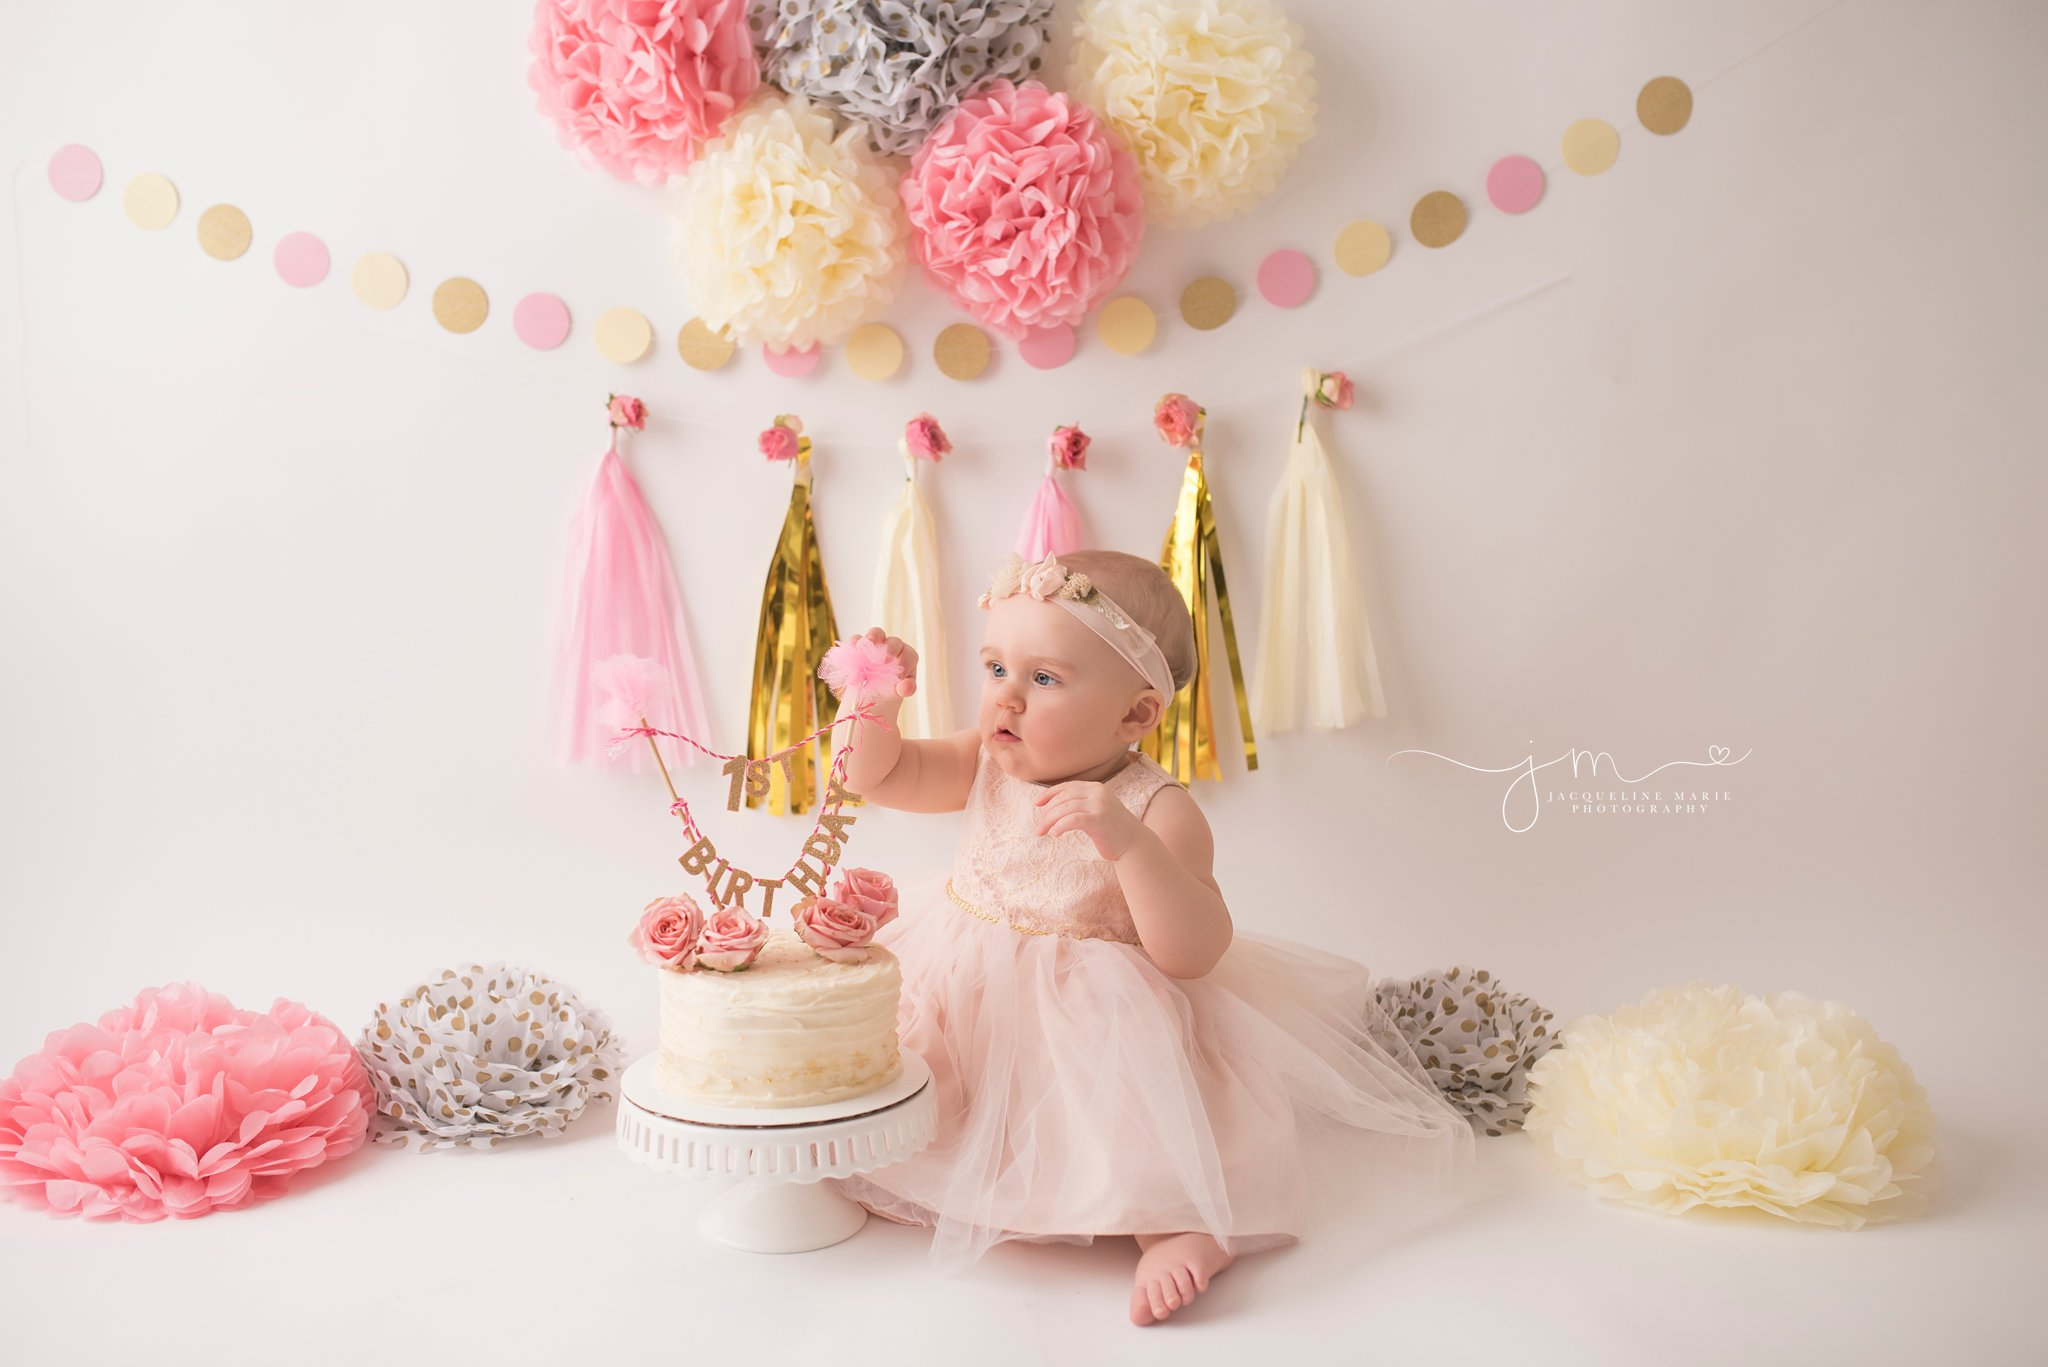 columbus ohio baby photographer features portrait with baby girl eating cake